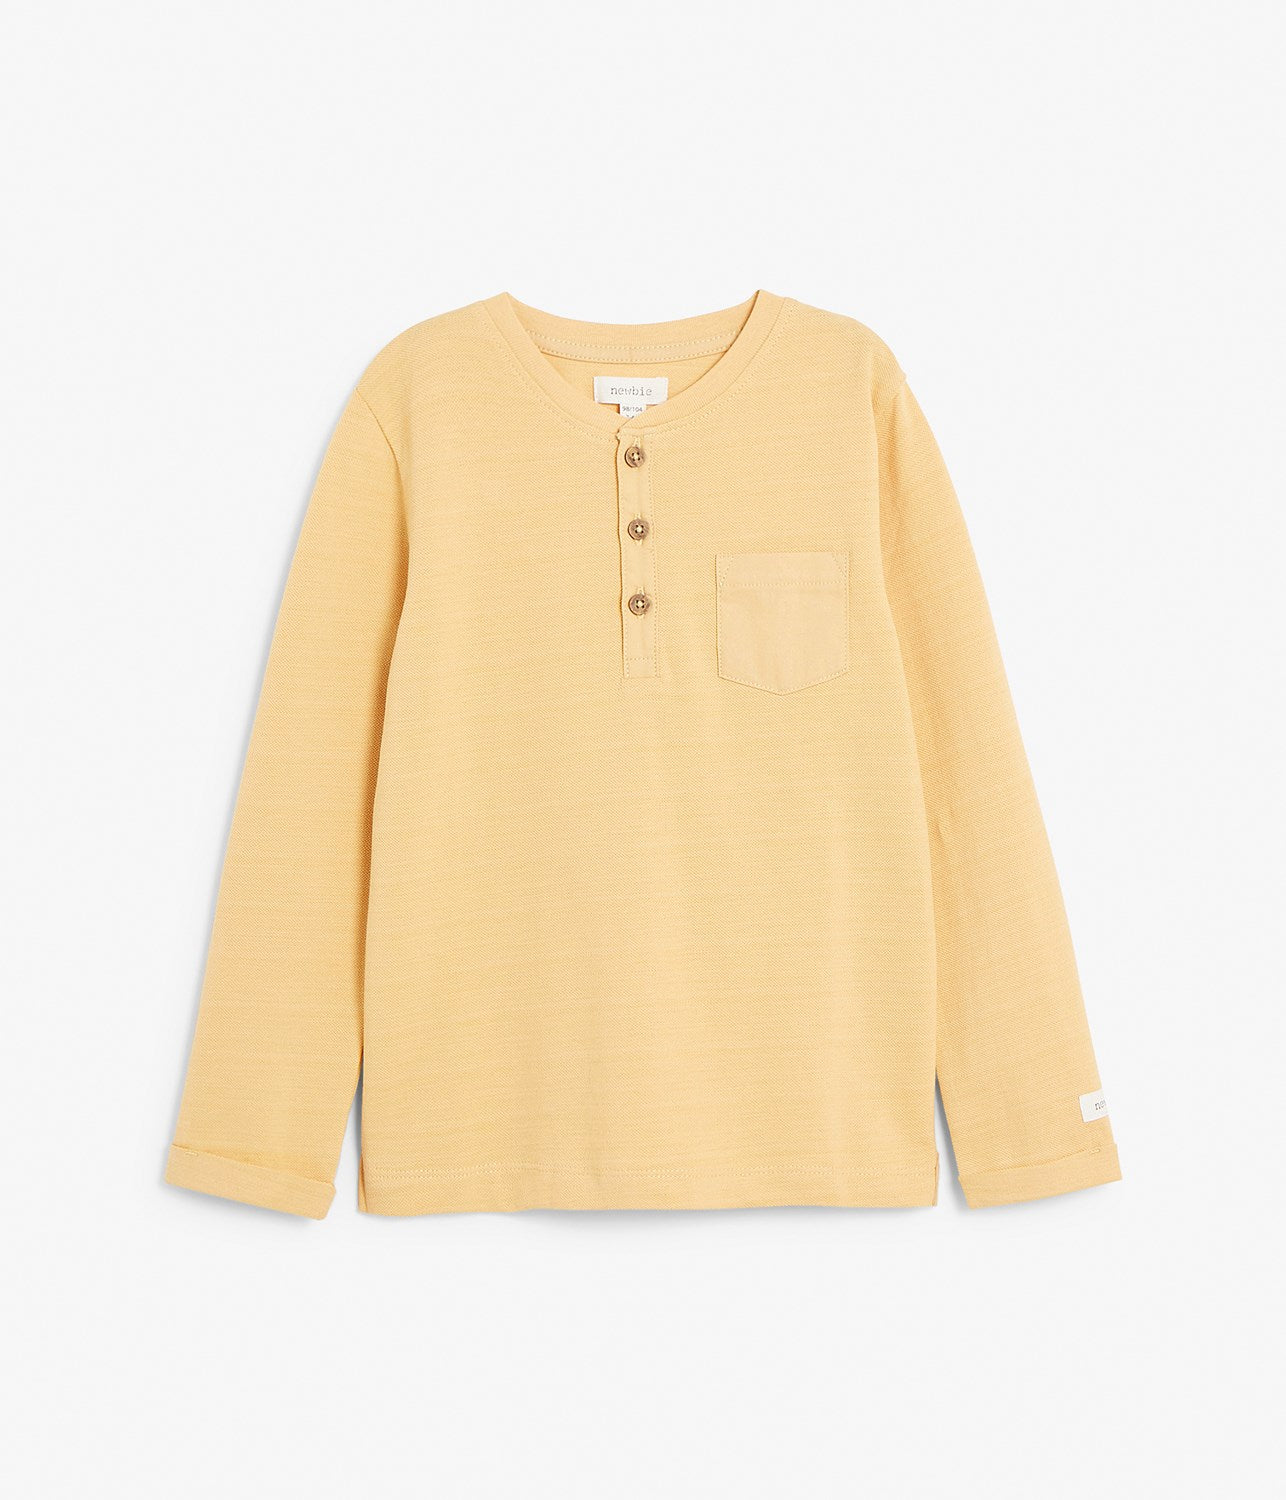 Kids beige basic long sleeve top